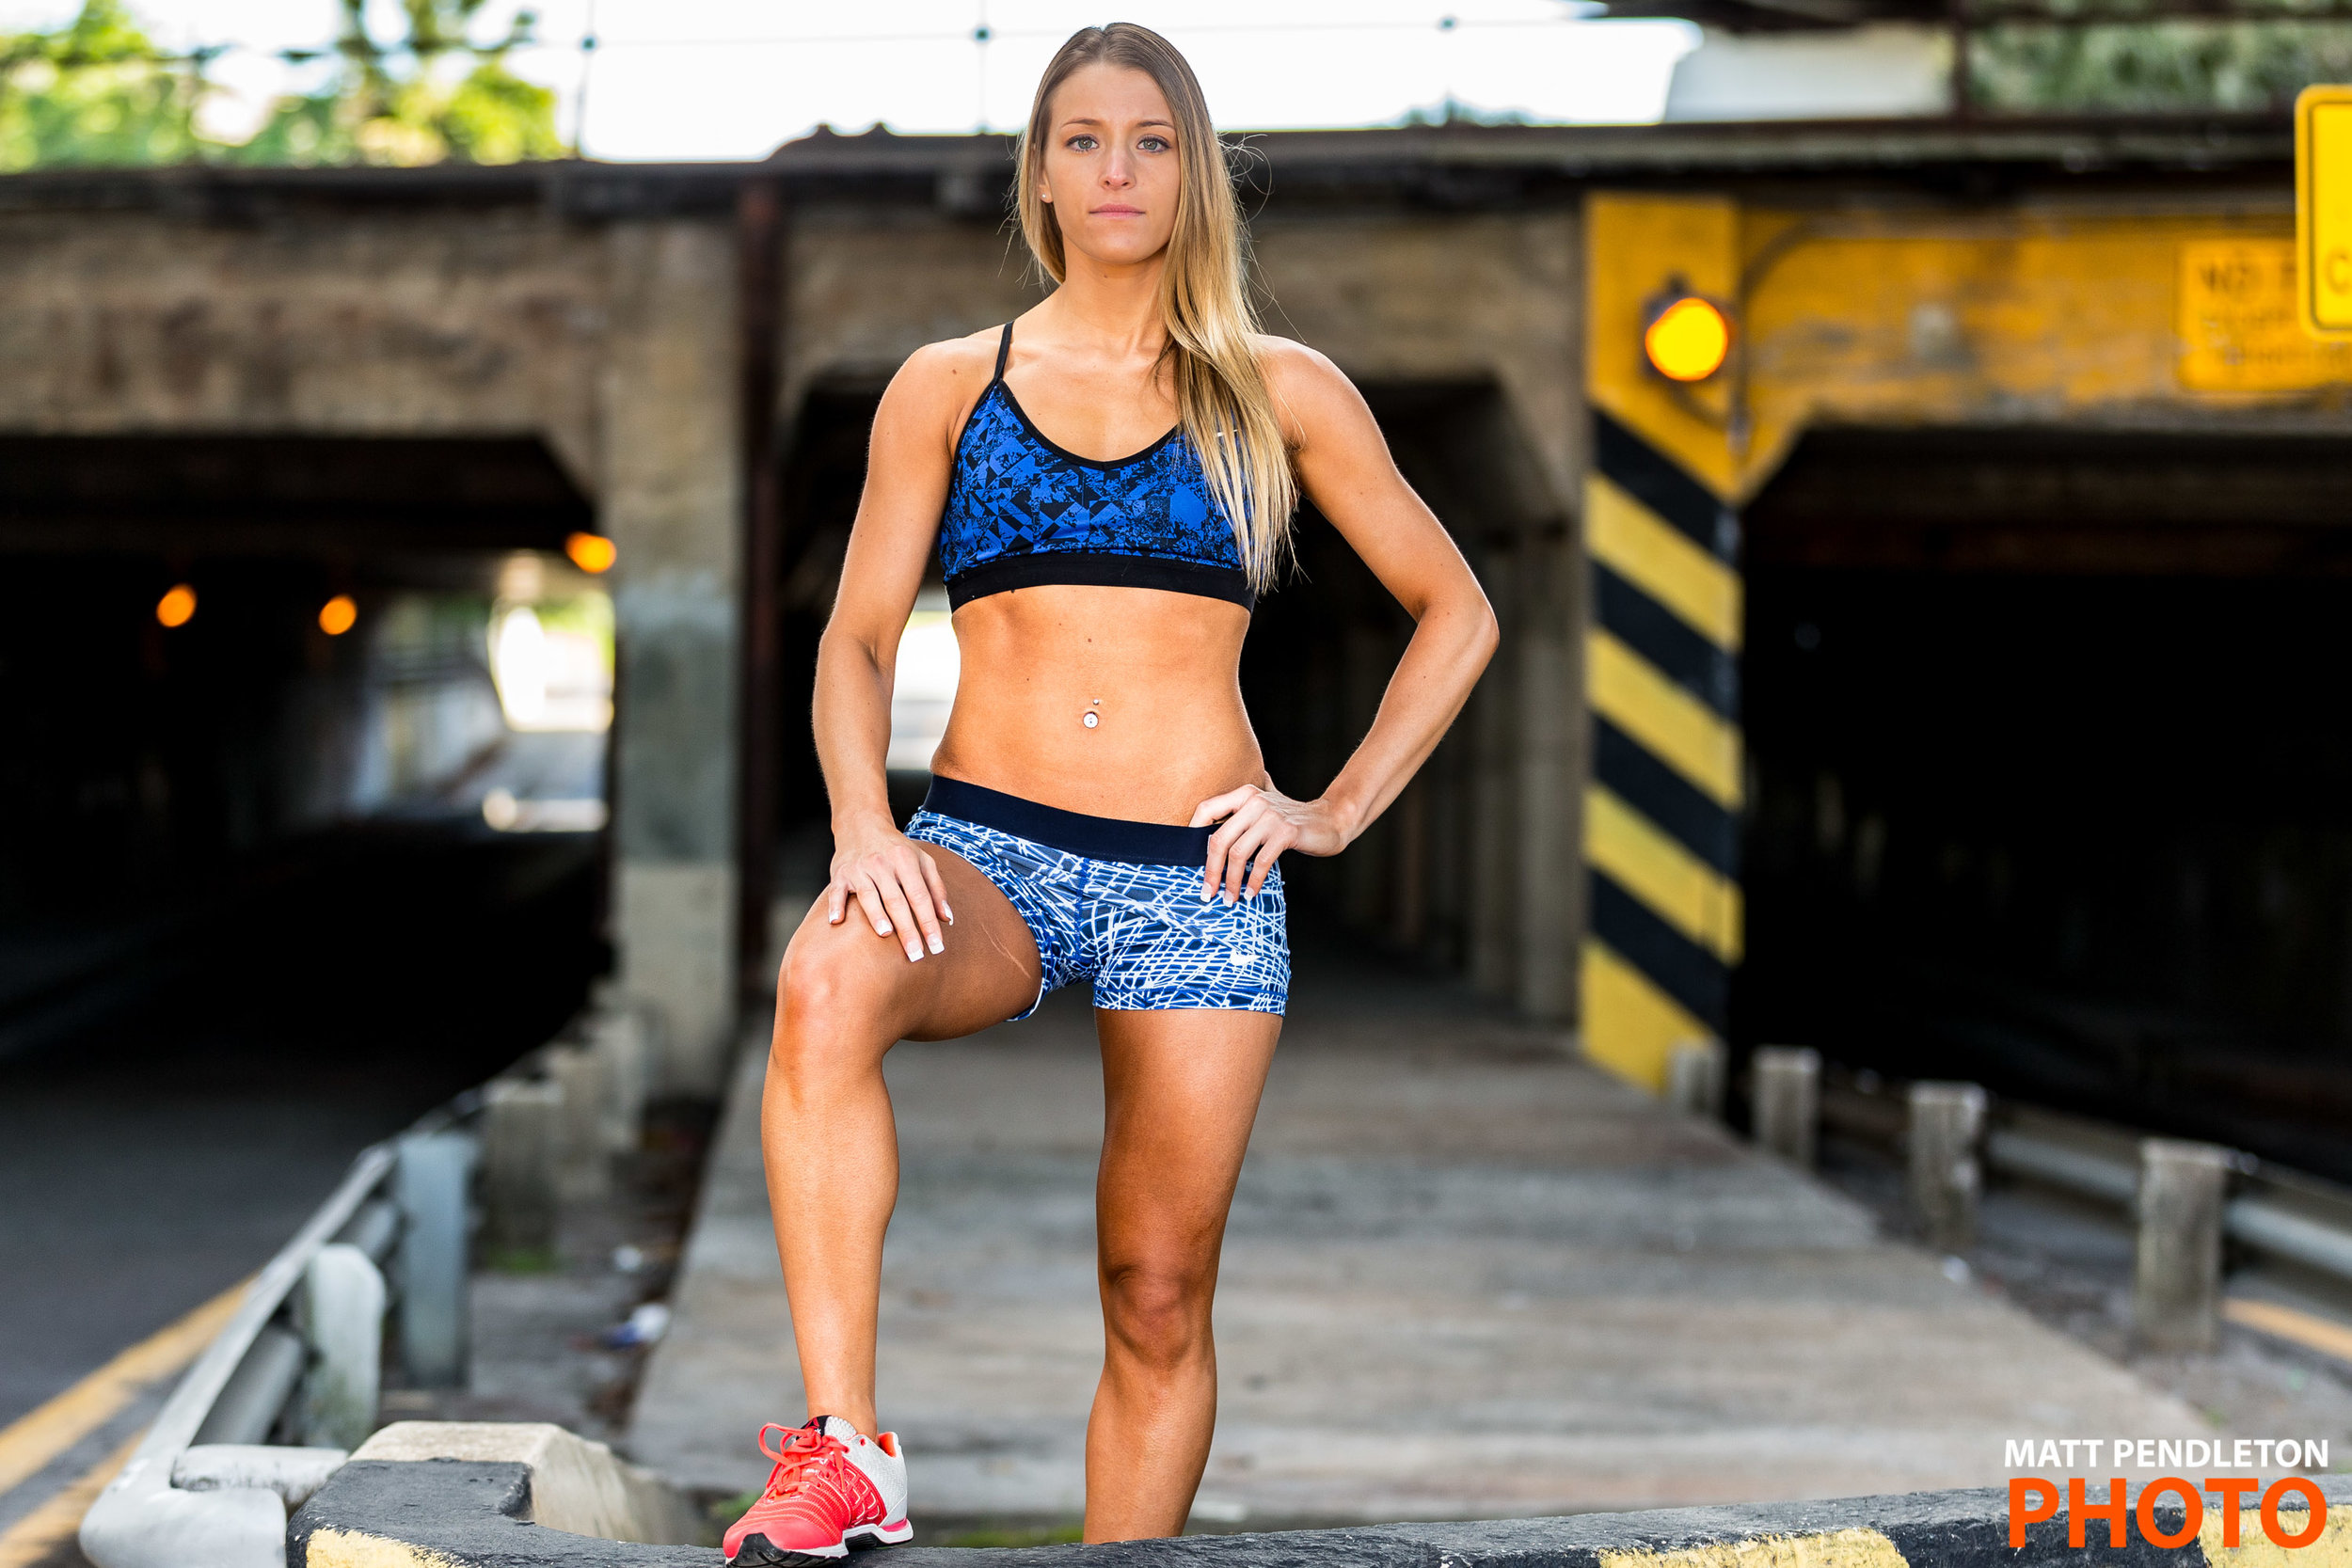 Scenes from the Fitness Photo Session with Nikki Steinberger on Sunday, April 10, 2016 at Myrtle Avenue Subway Tunnel in Jacksonville, FL / Photo by Matt Pendleton. http://mattpendleton.com